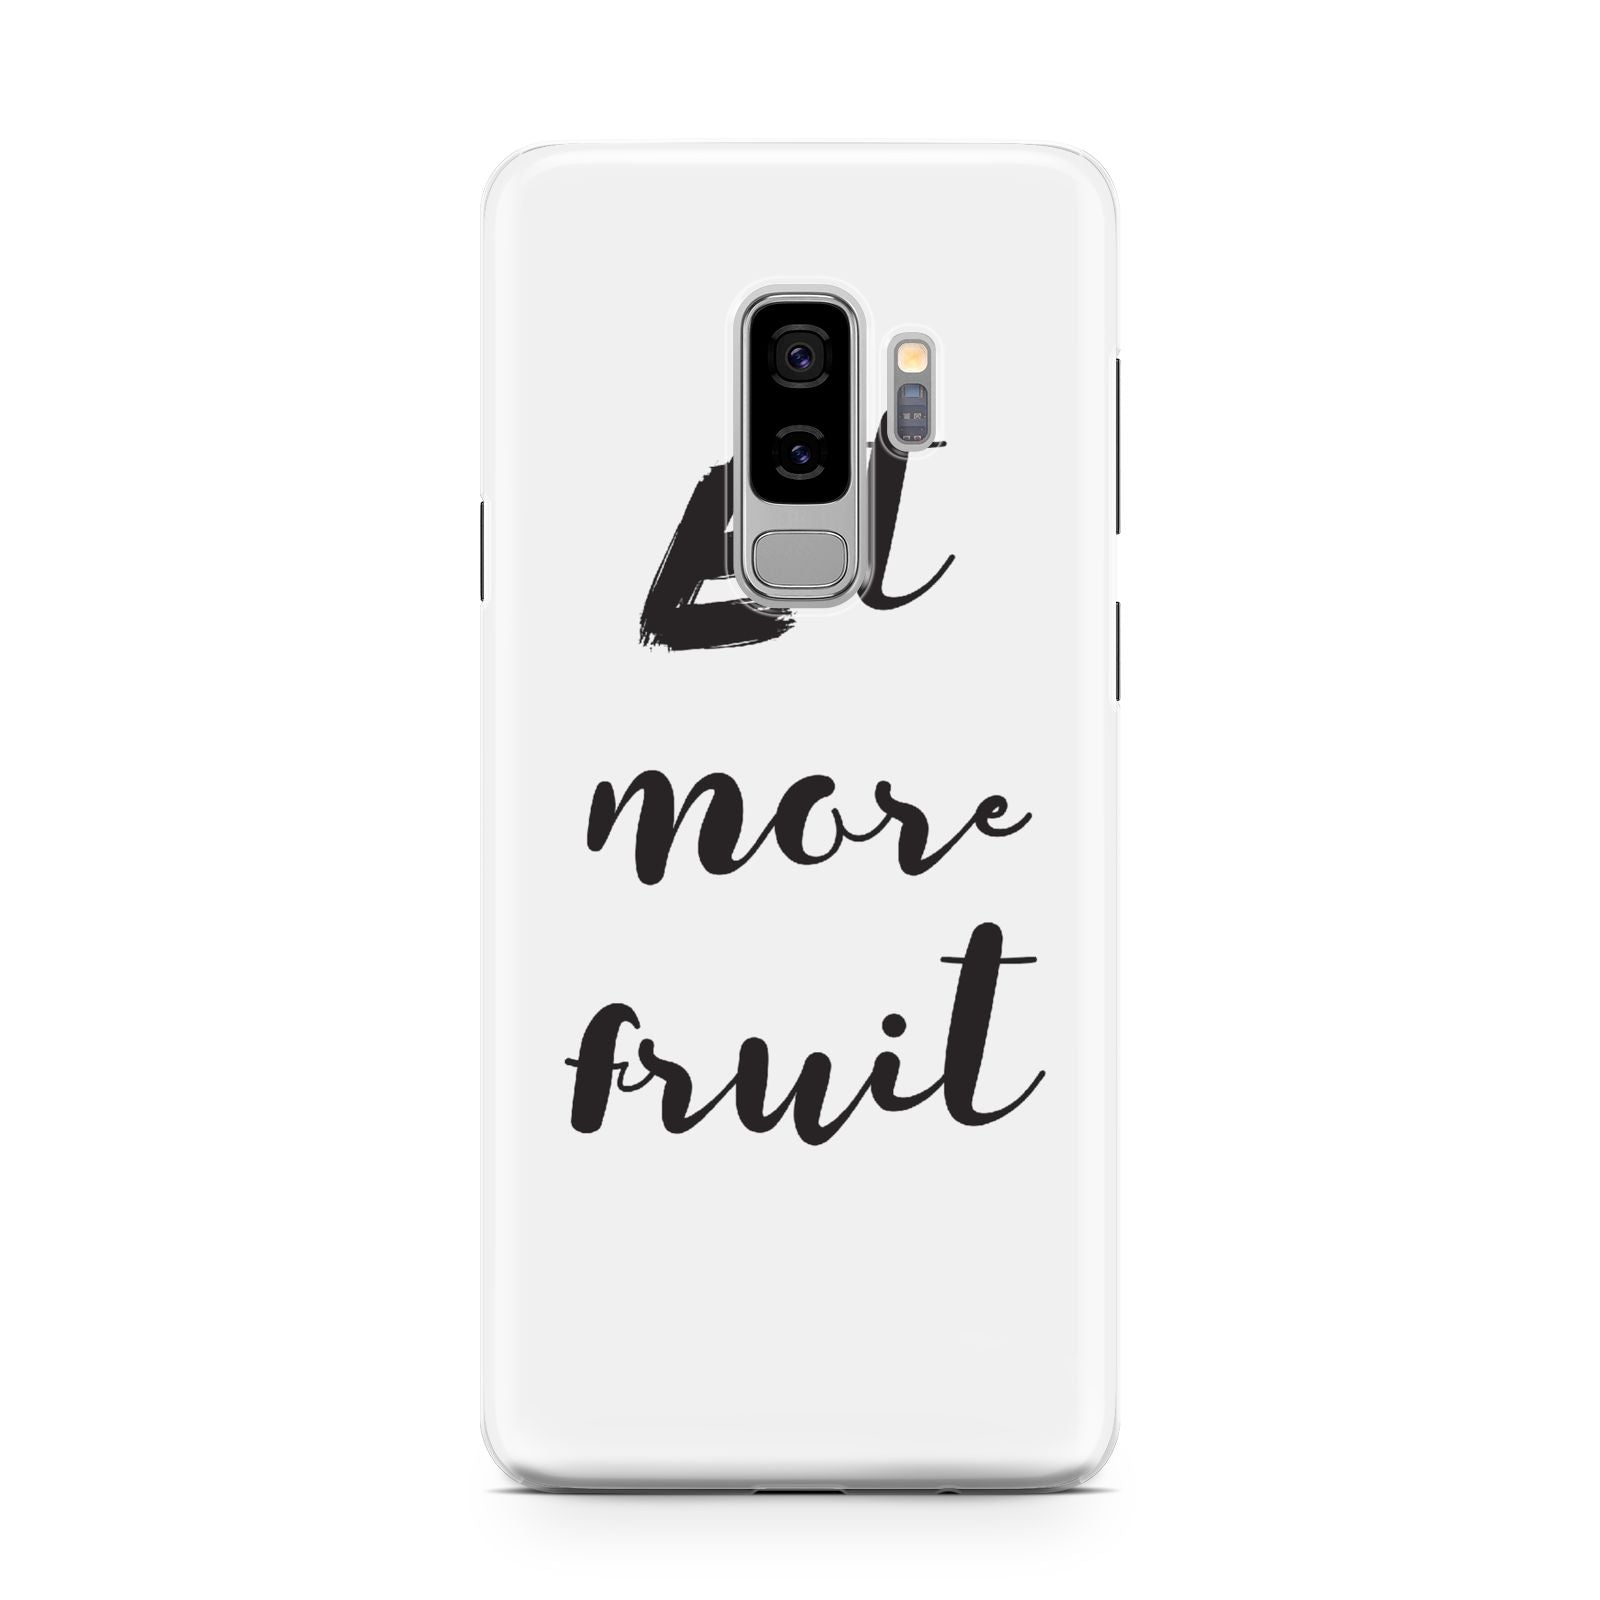 Eat More Fruit Samsung Galaxy S9 Plus Case on Silver phone